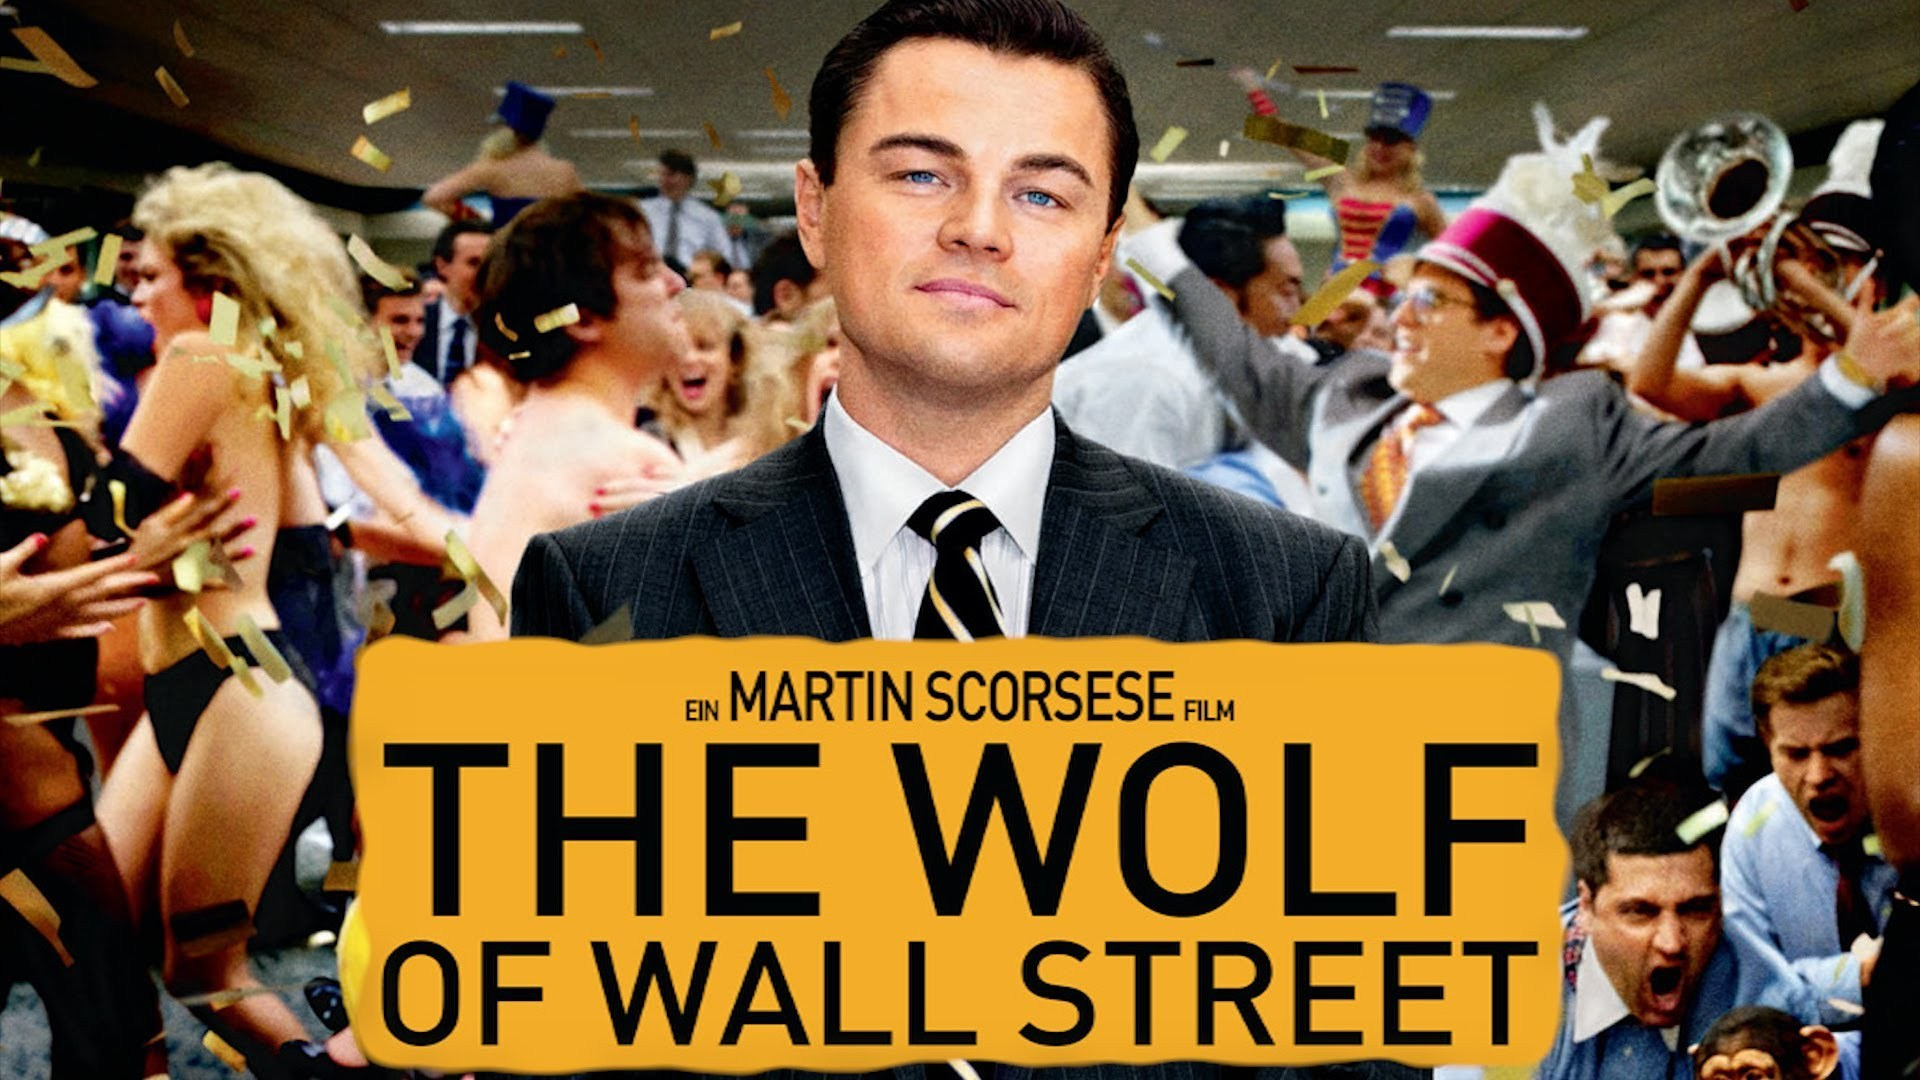 top-rated-movies-netflix-india-the-wolf-of-wall-street-image